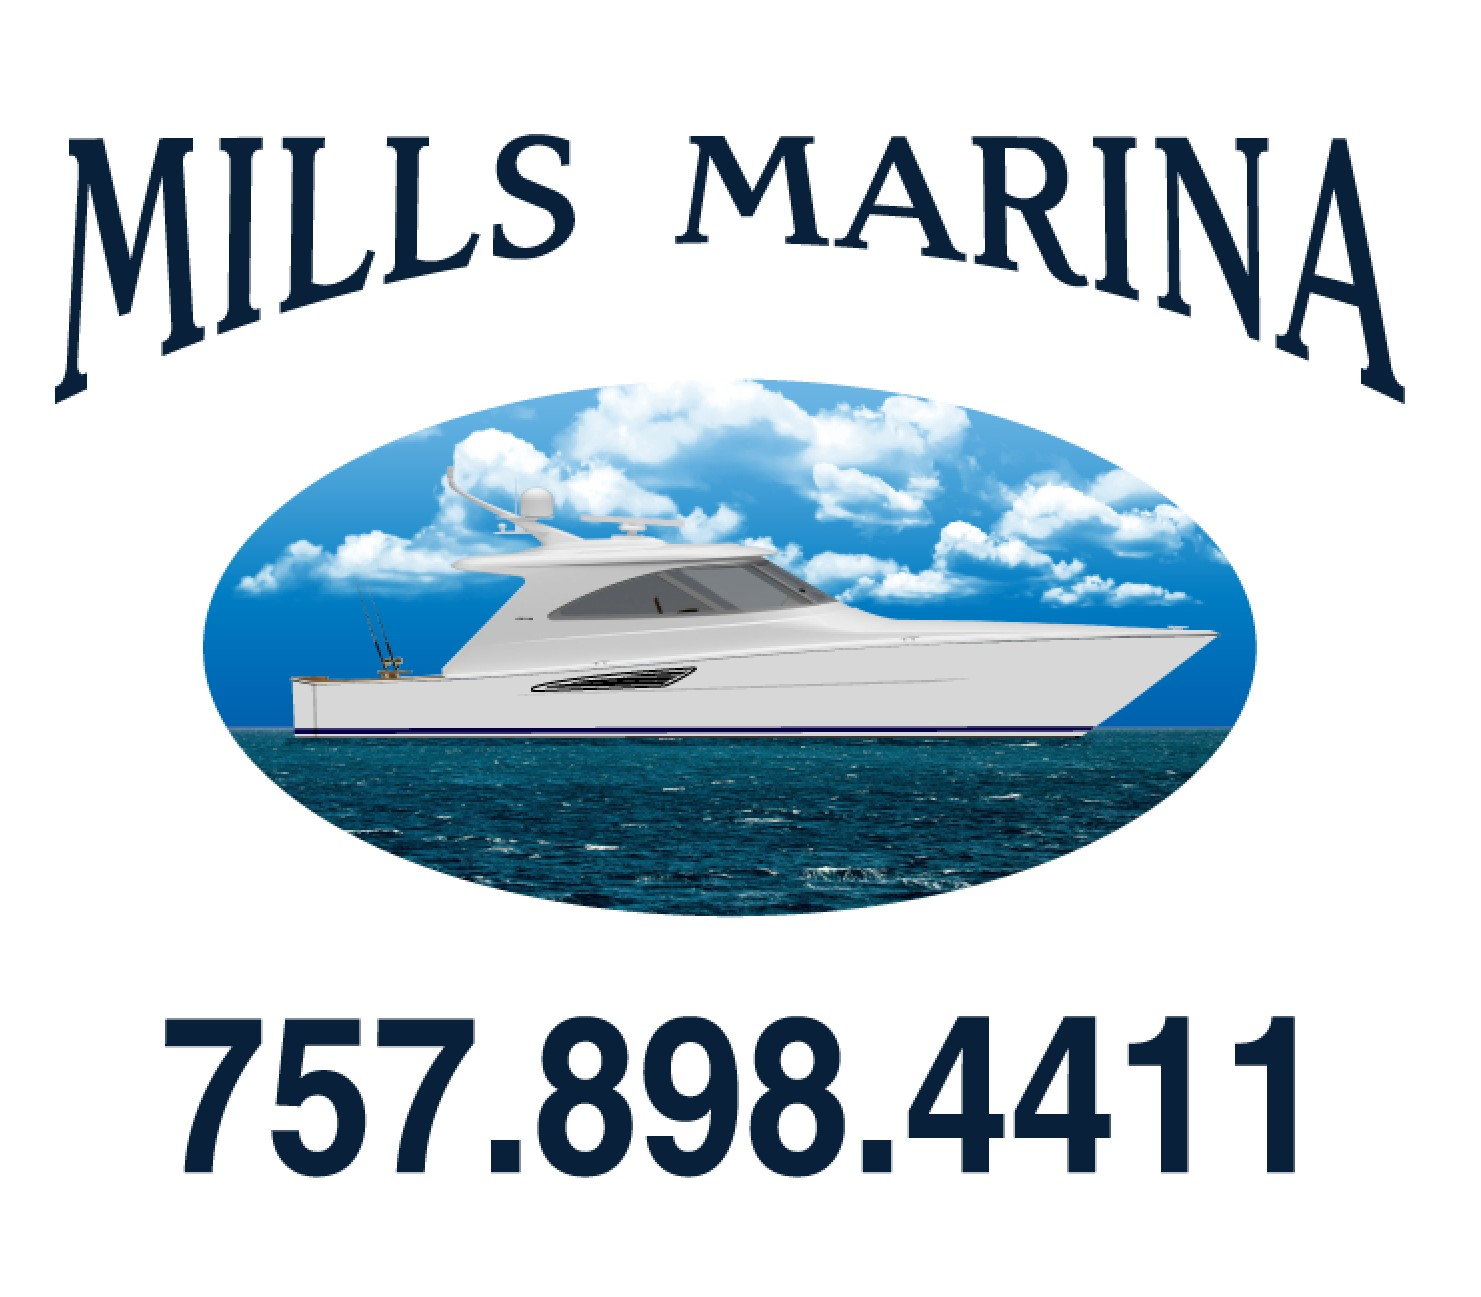 MILLS MARINA 4X8 MDO SINGLE-SIDED SIGN CLIENT LAYOUT 121218-01.jpg